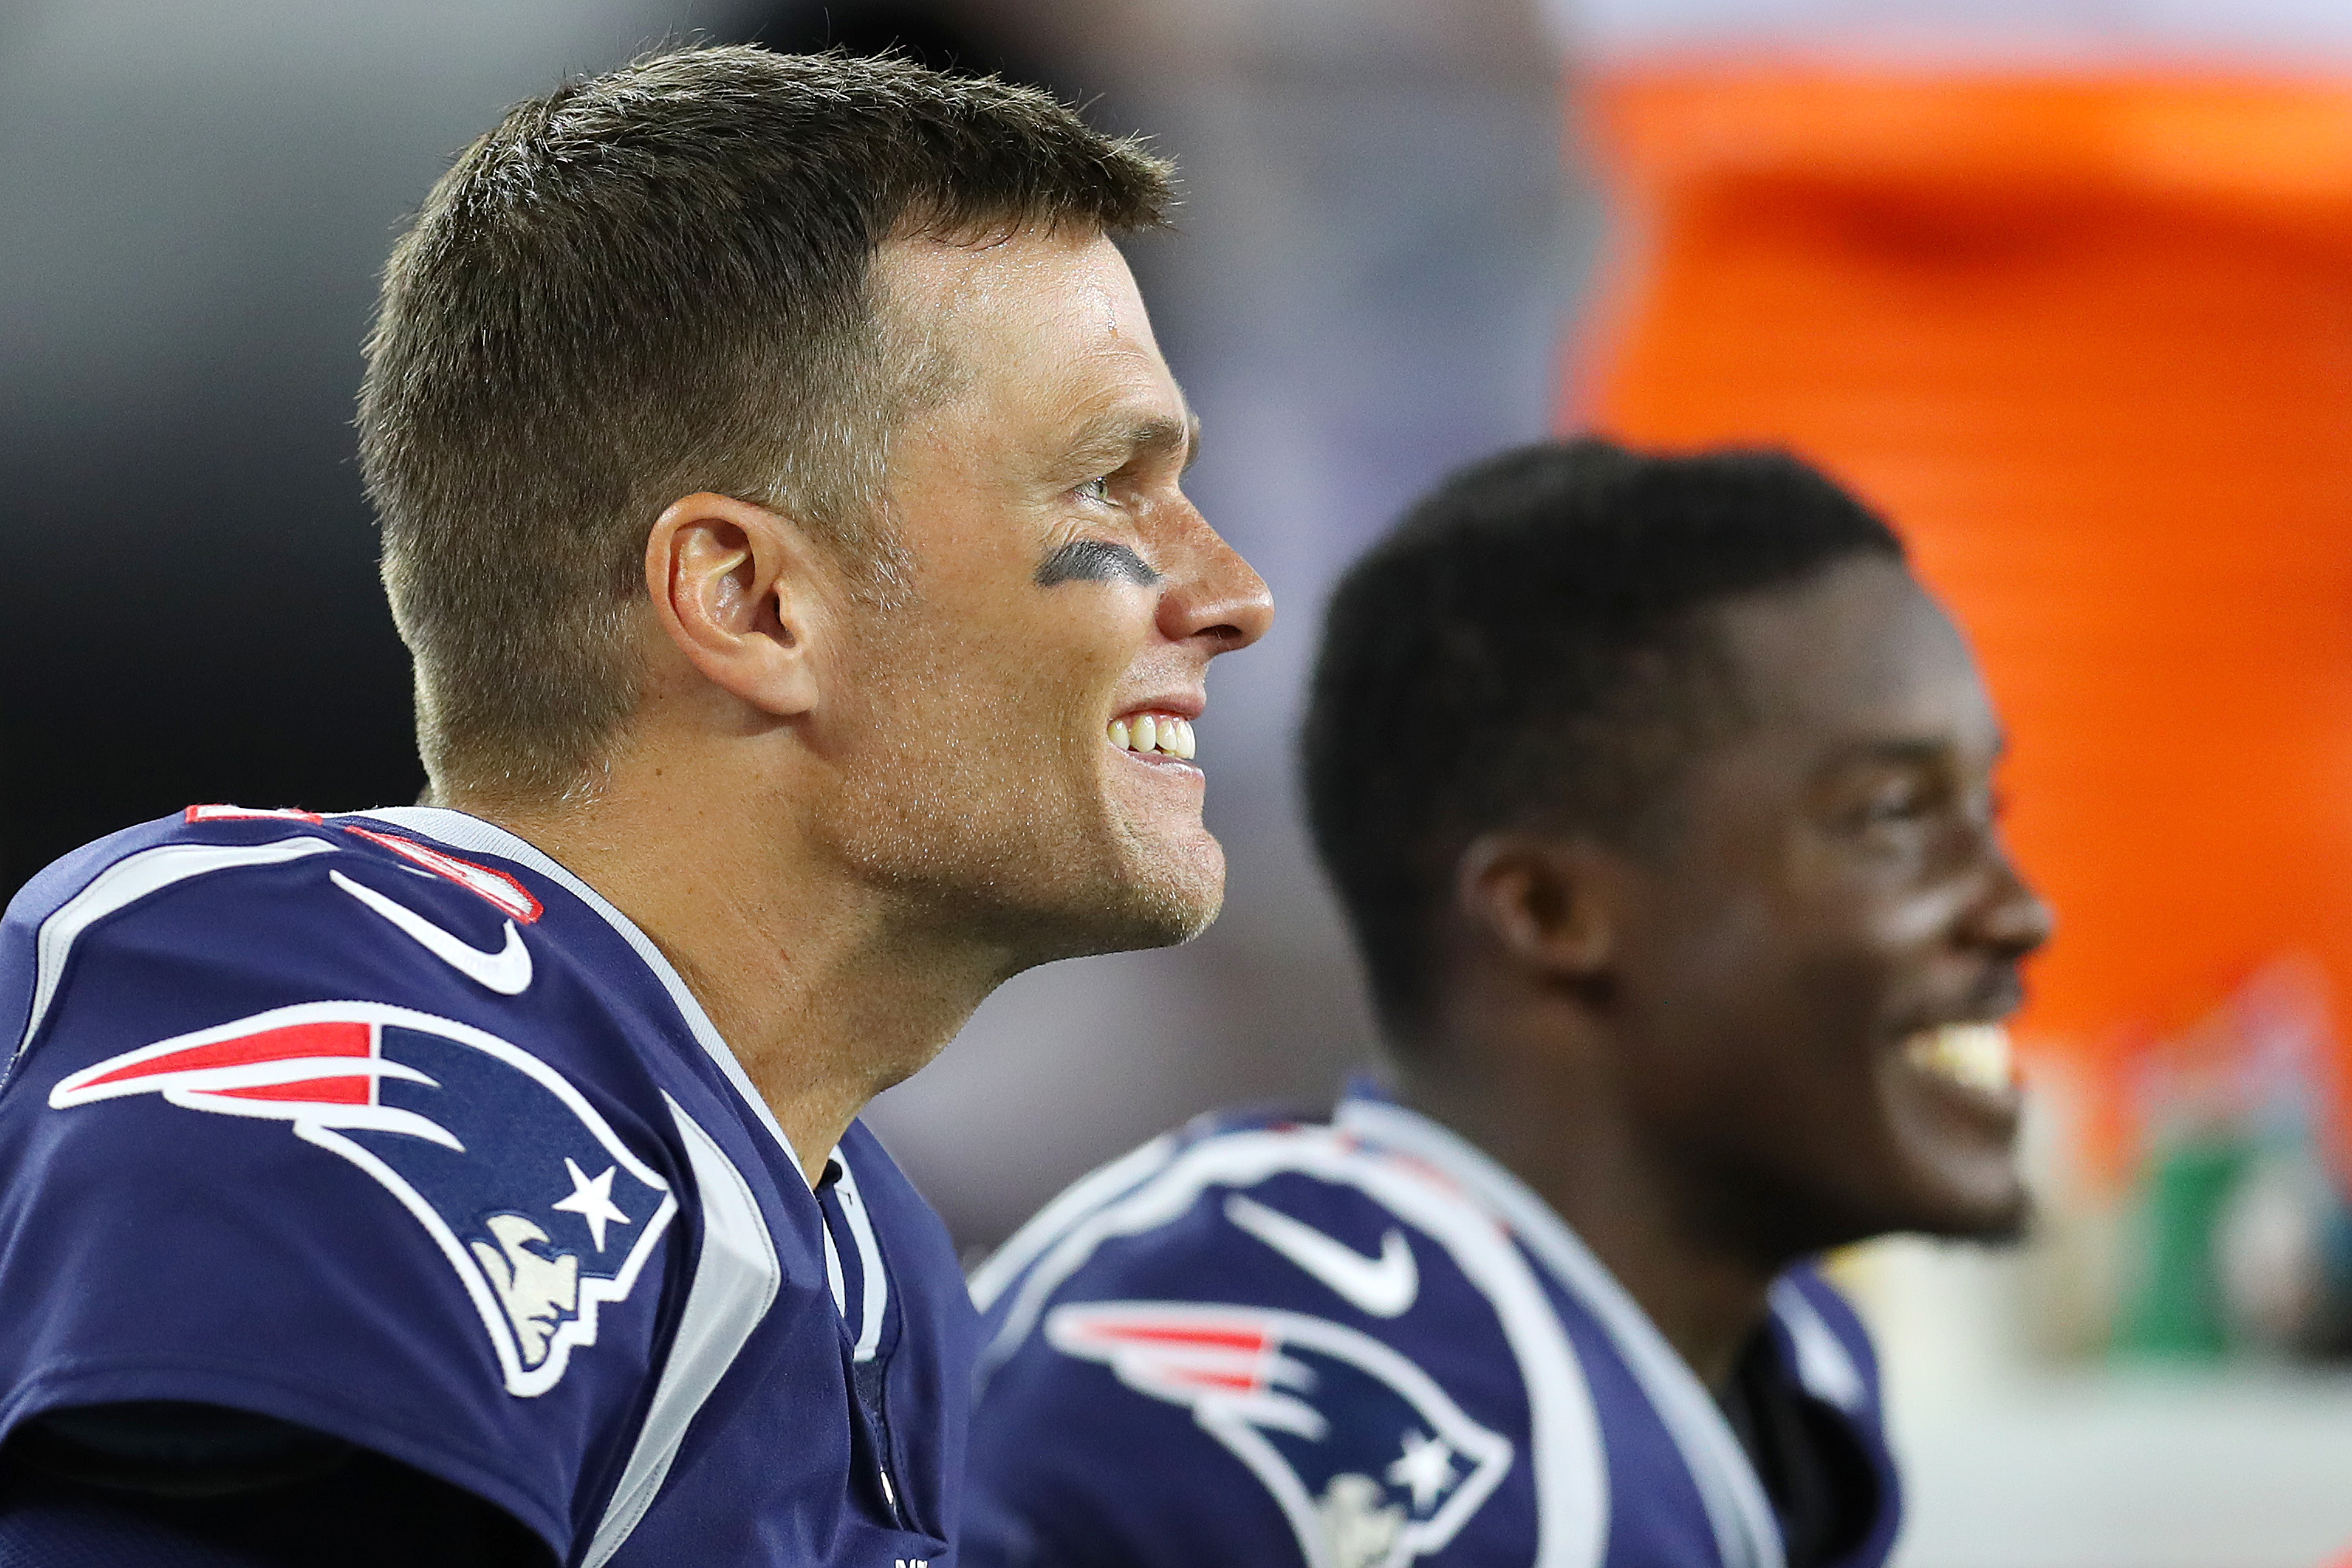 Tom Brady of the New England Patriots laughs